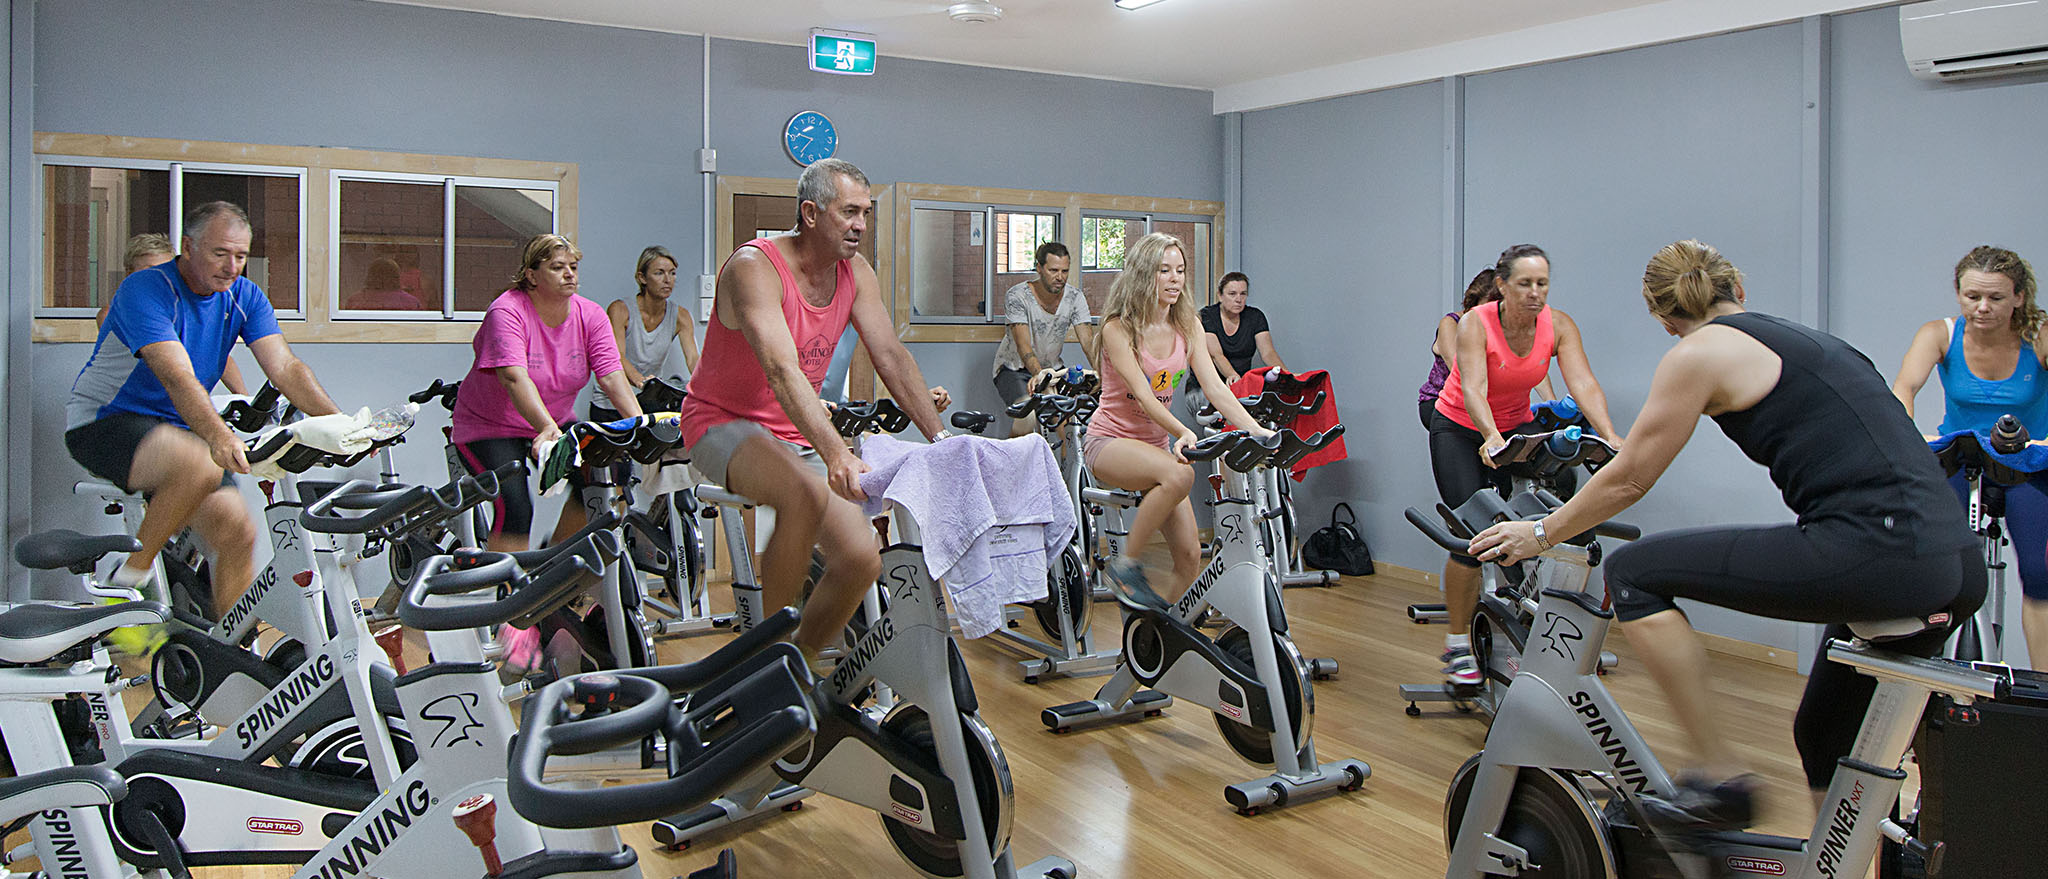 See our extensive group fitness timetable!